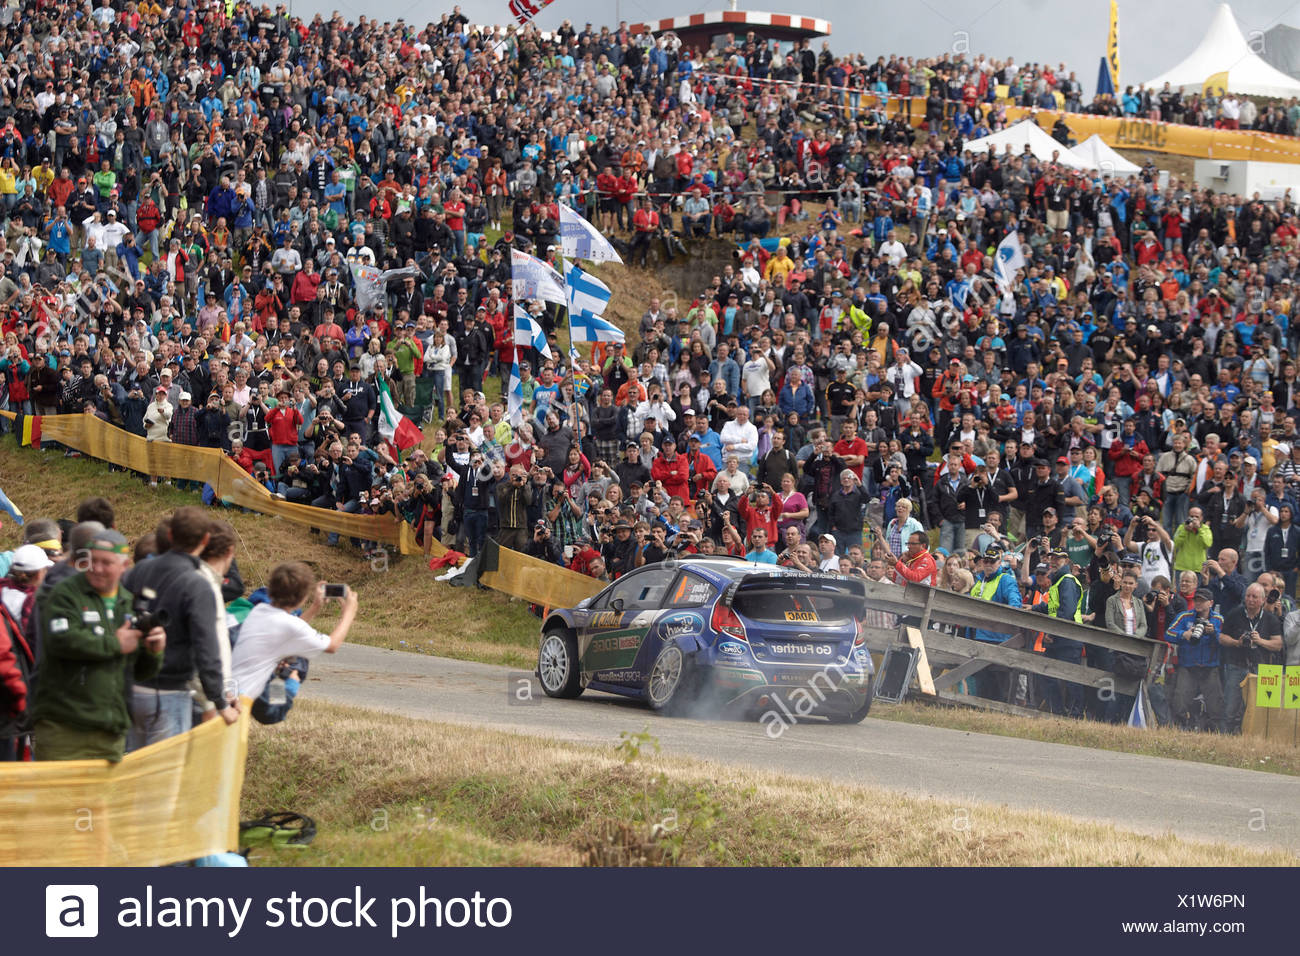 ADAC Rally Deutschland, special stage, Baumholder military training area, Petter Solberg, NOR, and co-driver Chris Patterson - Stock Image